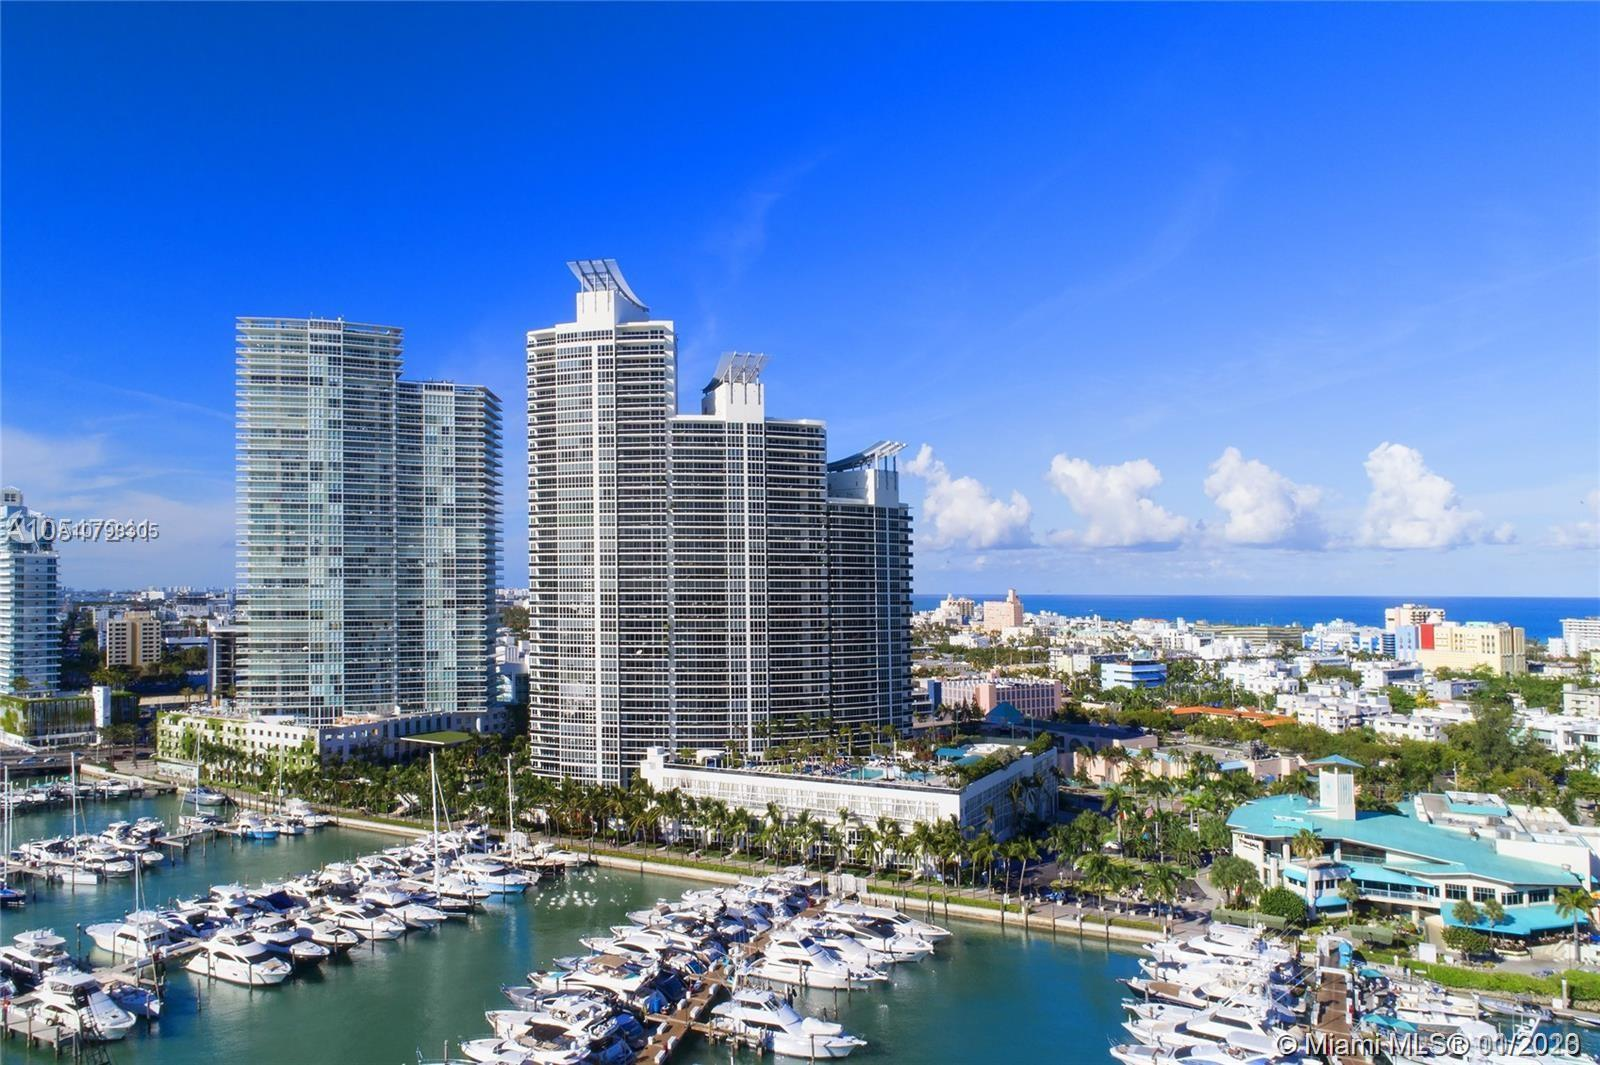 BEST PRICE UNIT! SPACIOUS & OPEN FLOOR PLAN ON THIS 2 BED/2 BATH LUXURY CONDO AT MURANO GRANDE ON SO